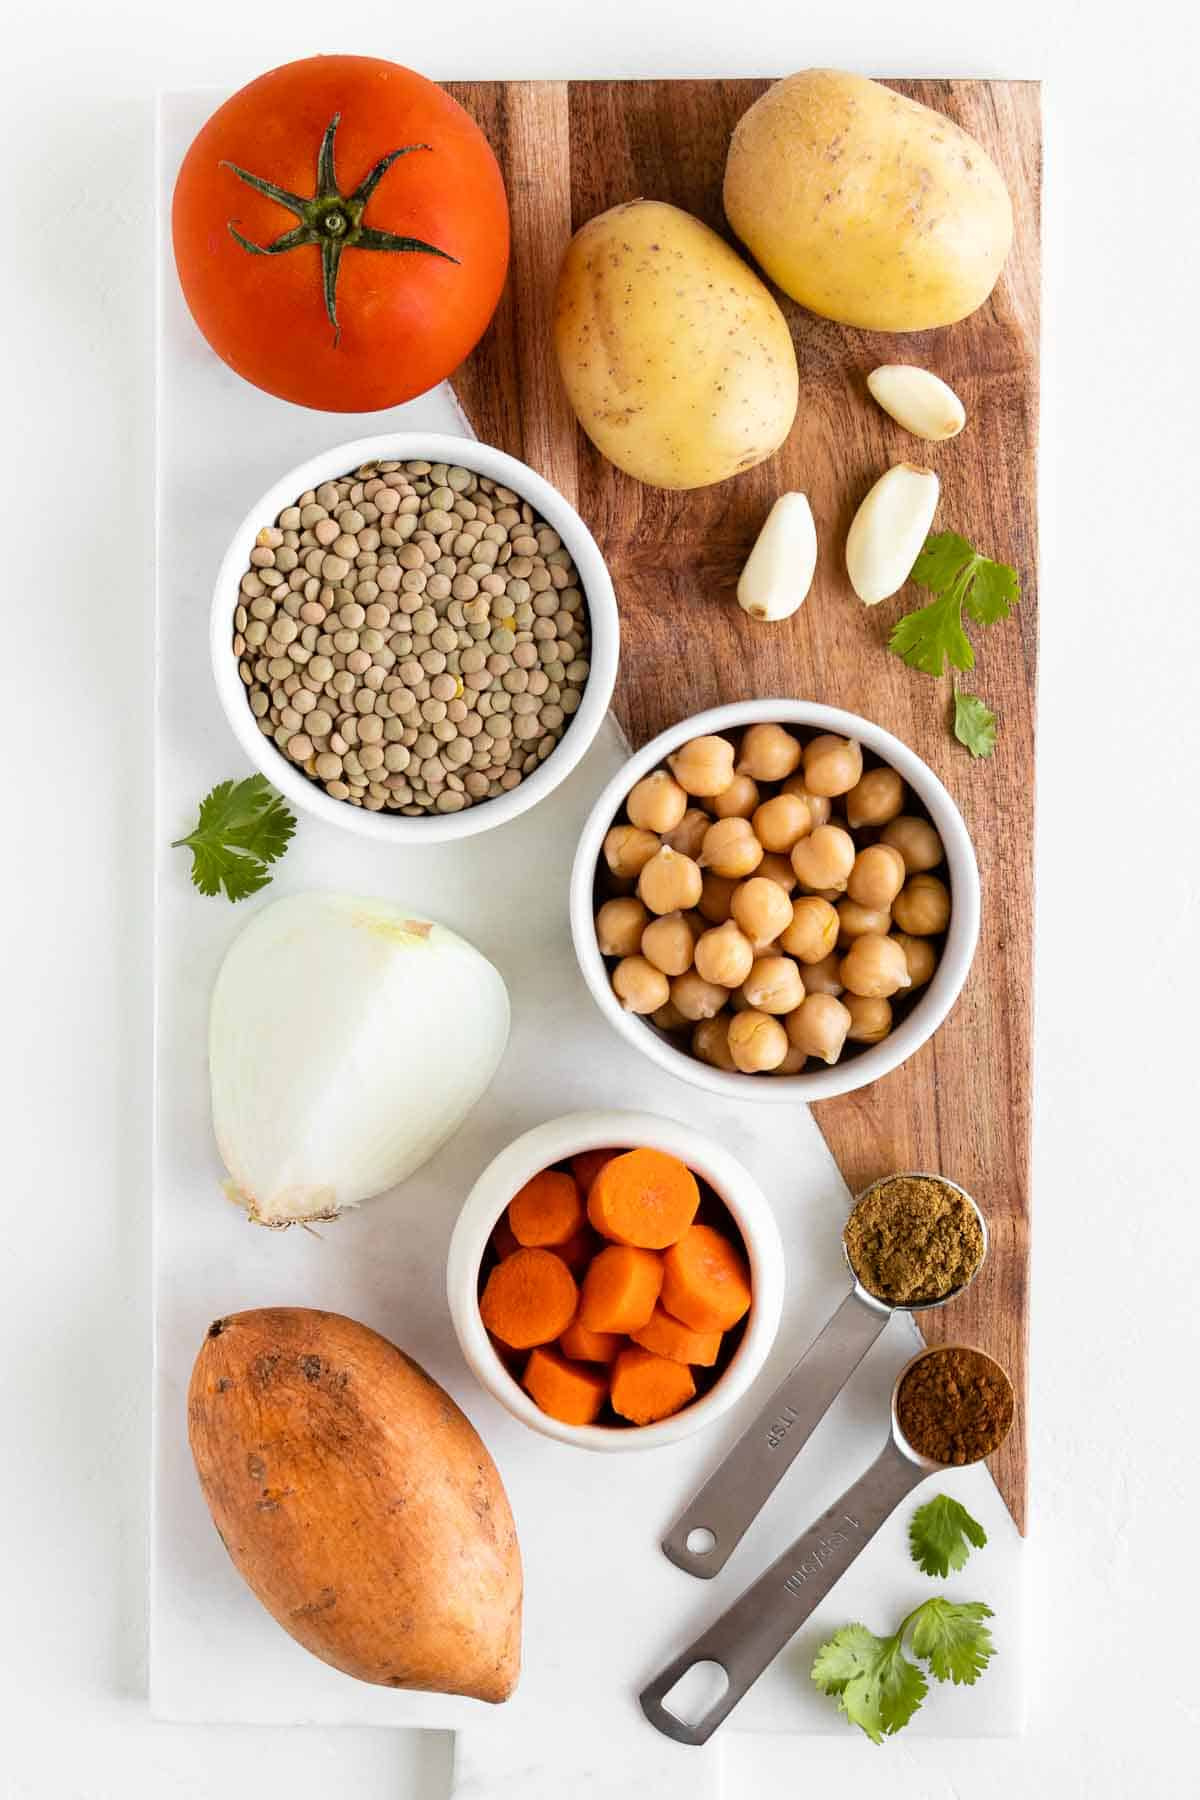 a small bowl of green lentils, chickpeas, and carrots on a marble board along with sweet potatoes, gold potatoes, tomato, and spices